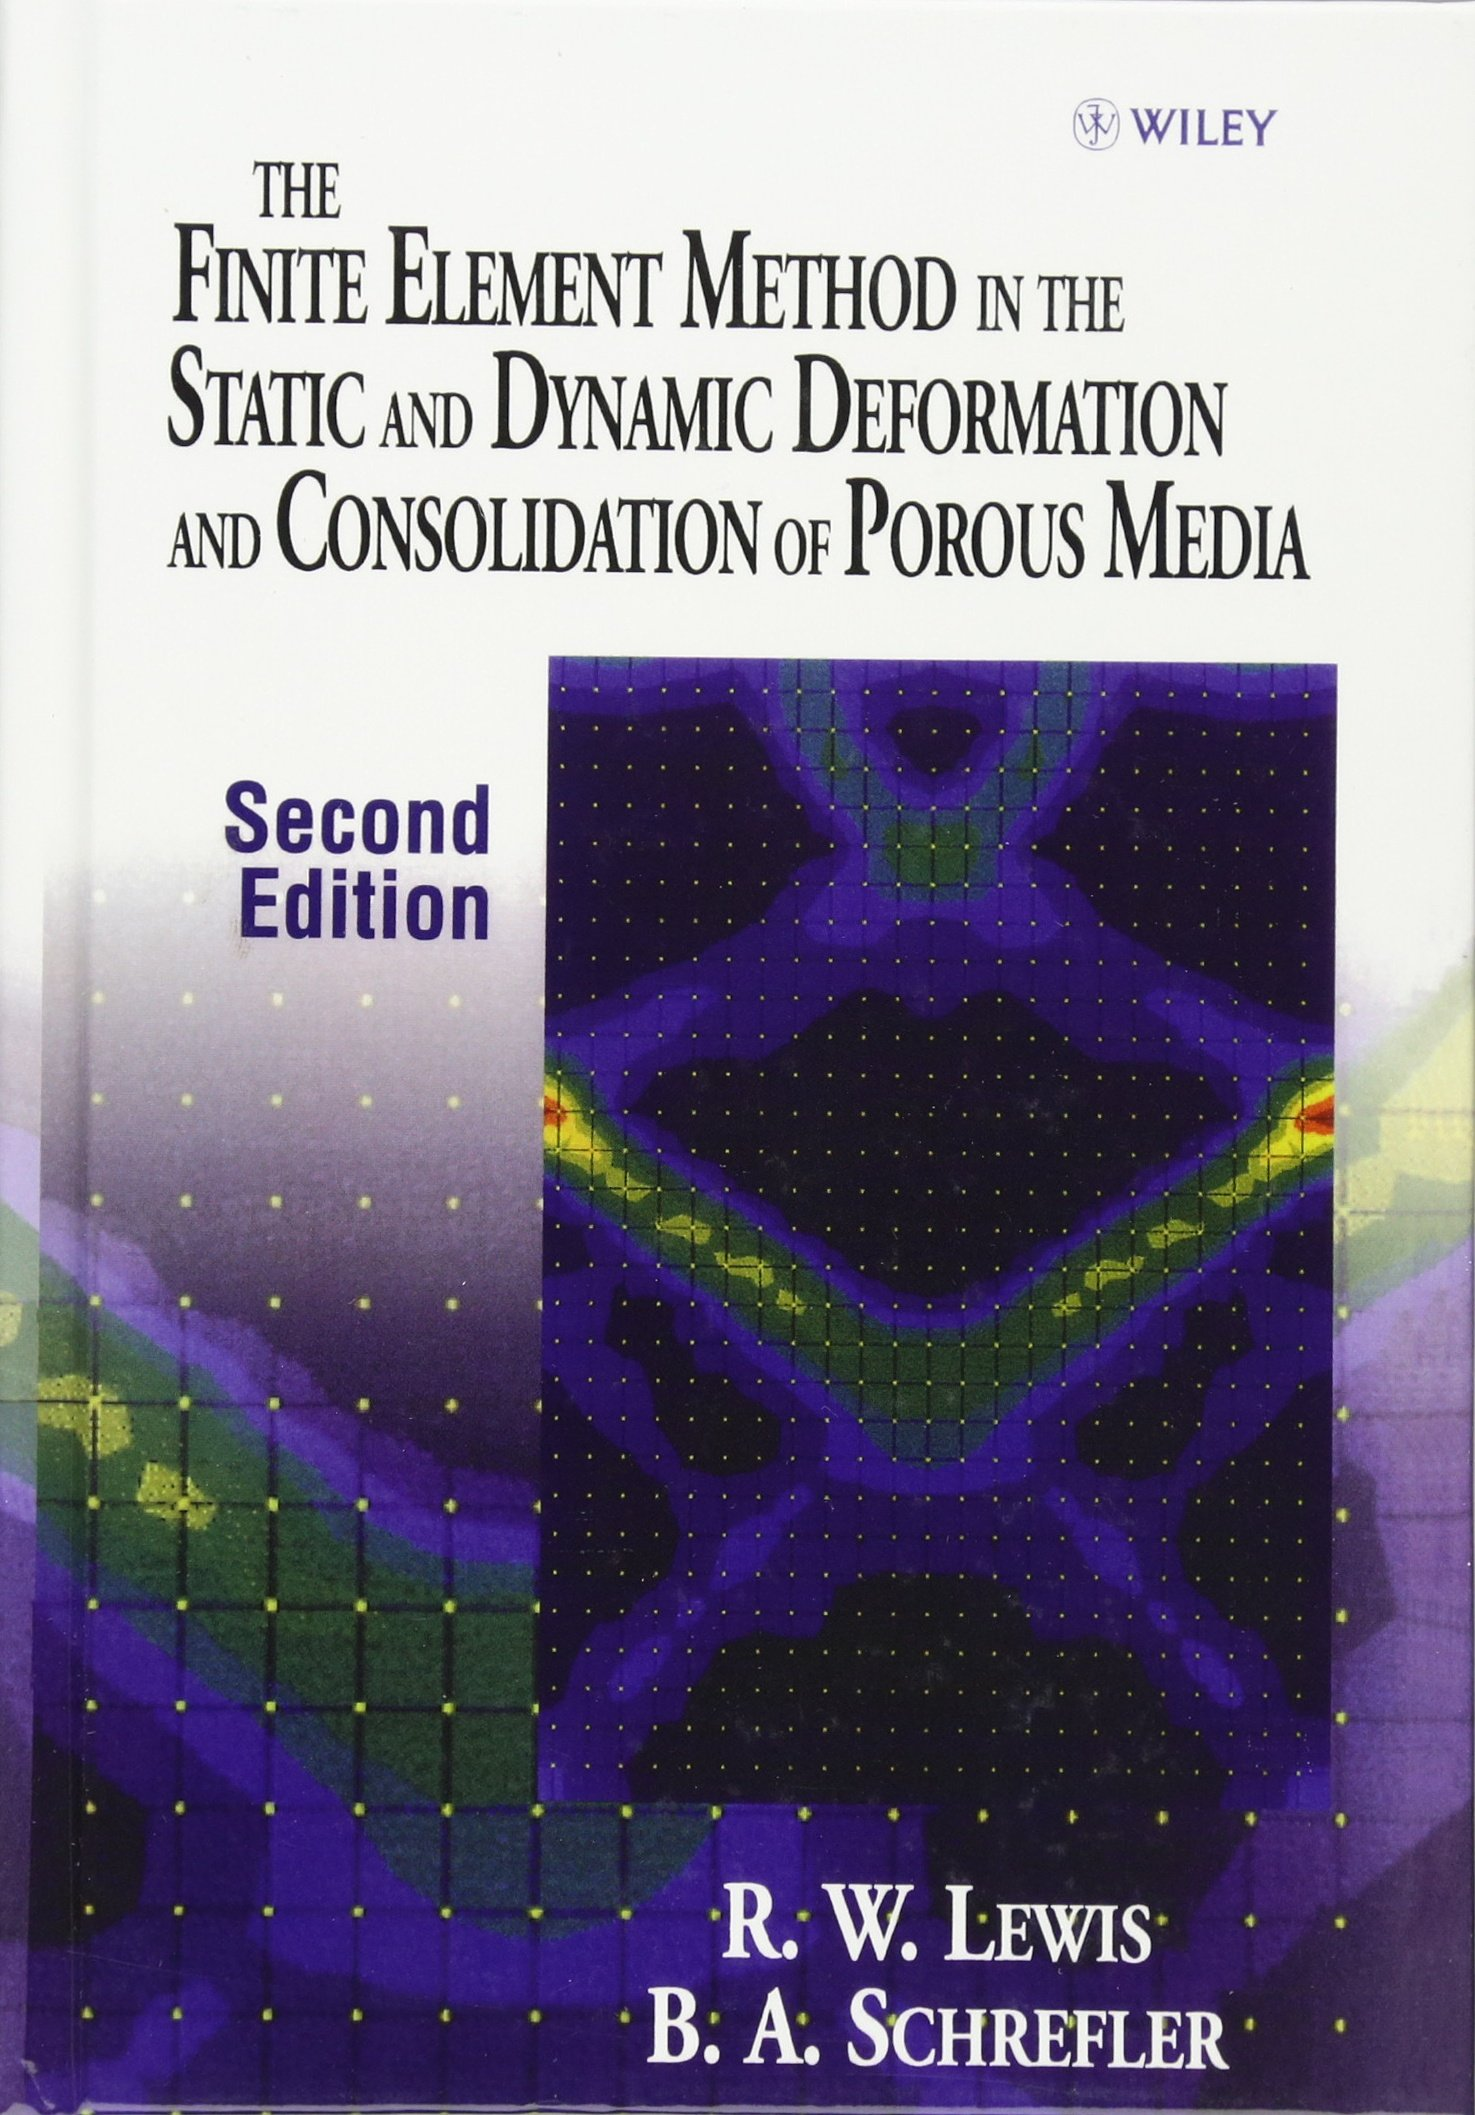 The Finite Element Method in the Static and Dynamic Deformation and Consolidation of Porous Media (Wiley Series in Numerical Methods in Engineering)